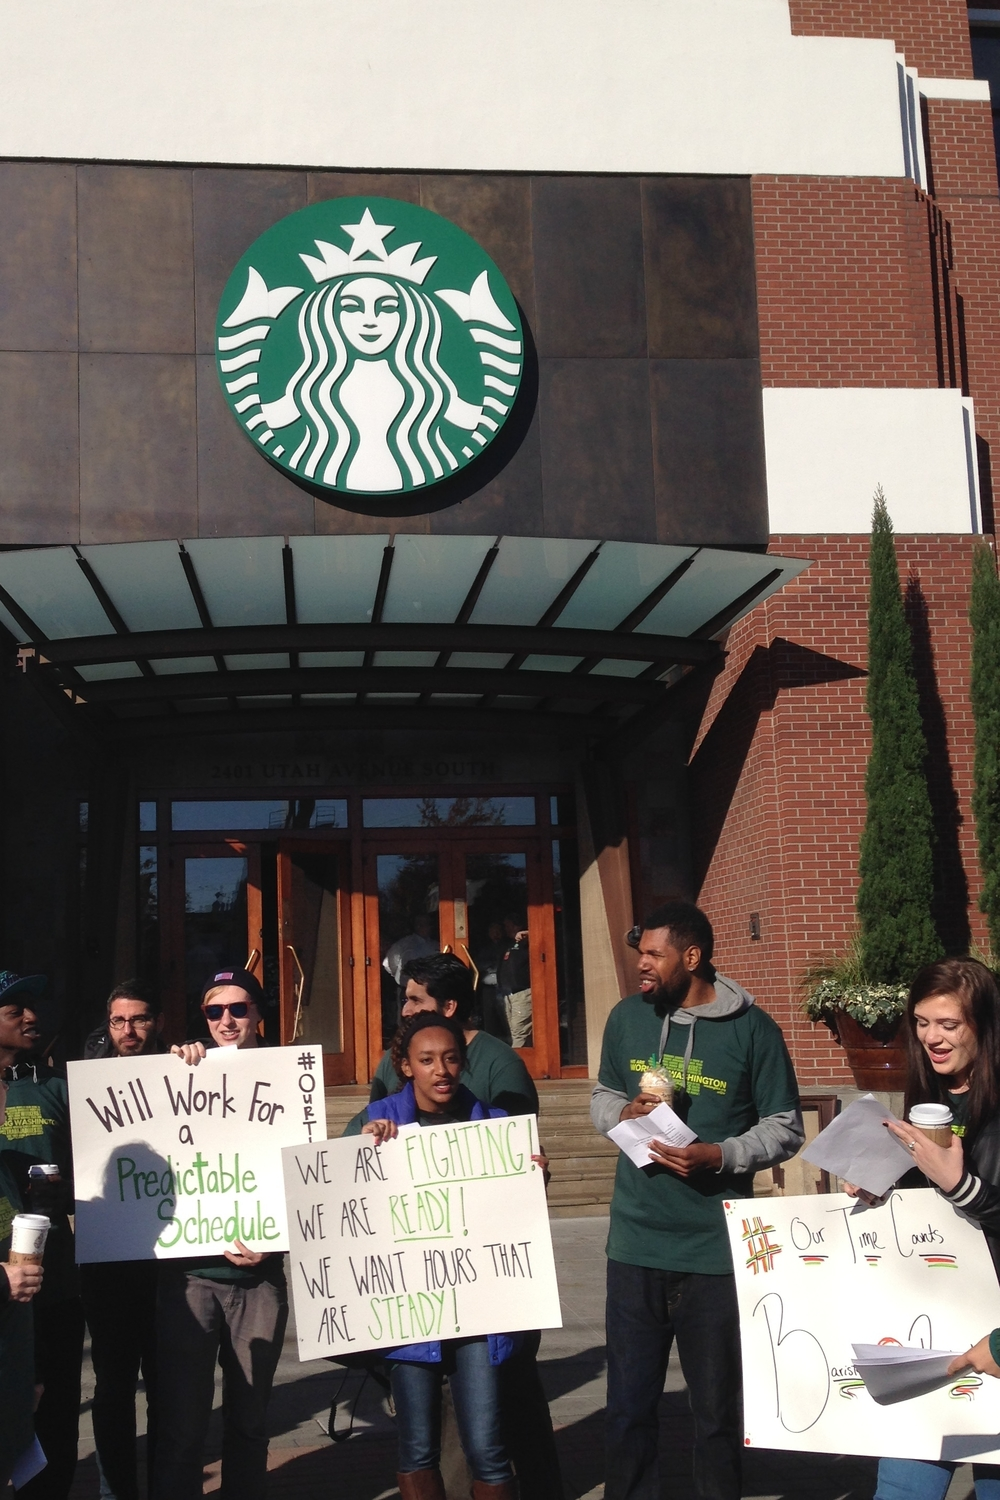 September 29, 2015: Rally outside Starbucks corporate headquarters.